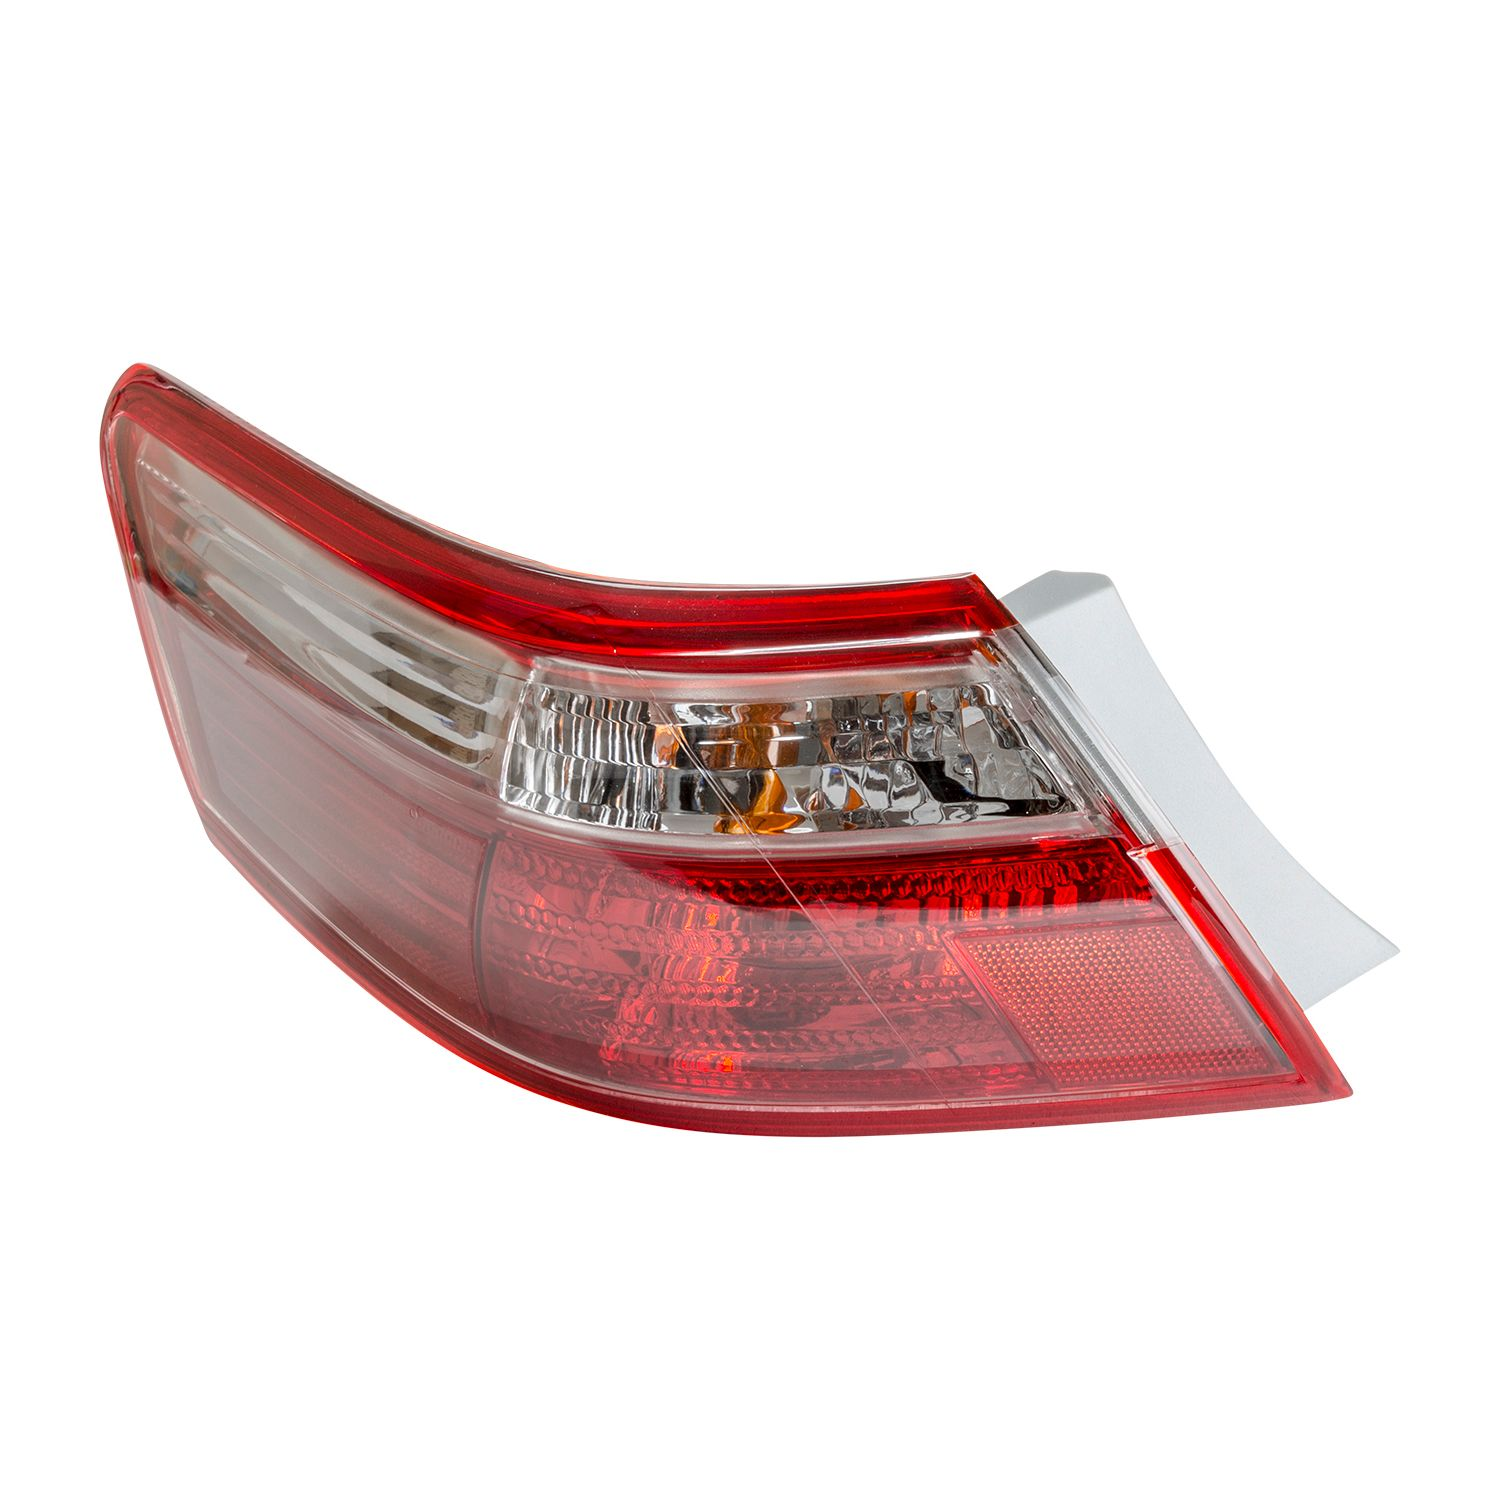 TYC 11-6184-00-1 Left Outer Tail Light Assembly for 07-09 Toyota Camry TO2818129